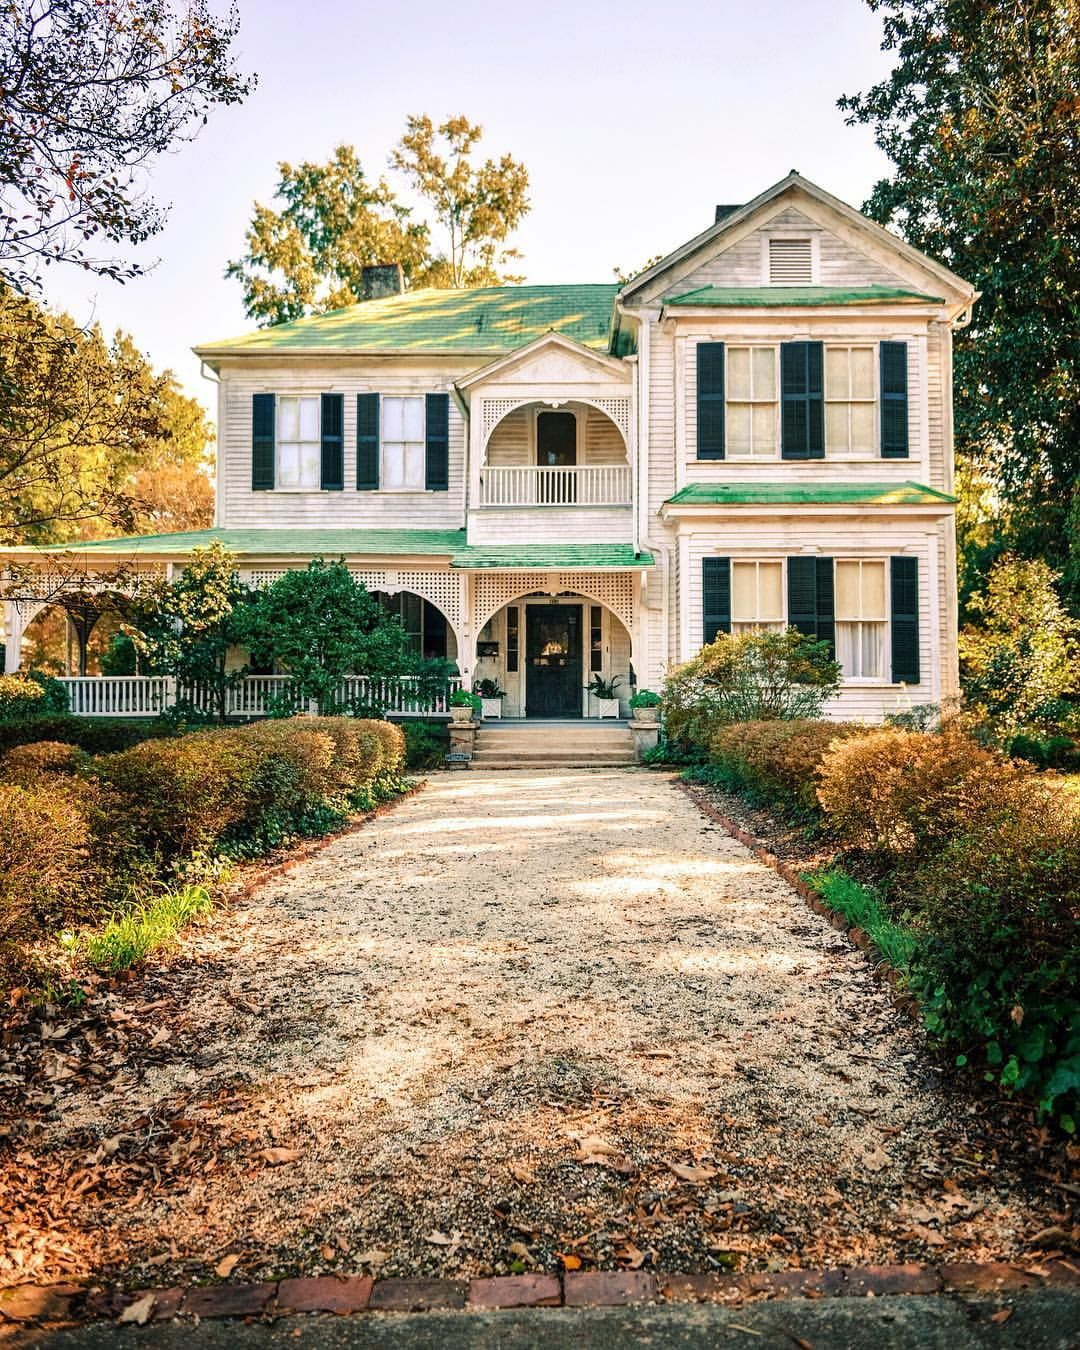 madison georgia victorian houses and old homes in 2019 pinterest rh ar pinterest com